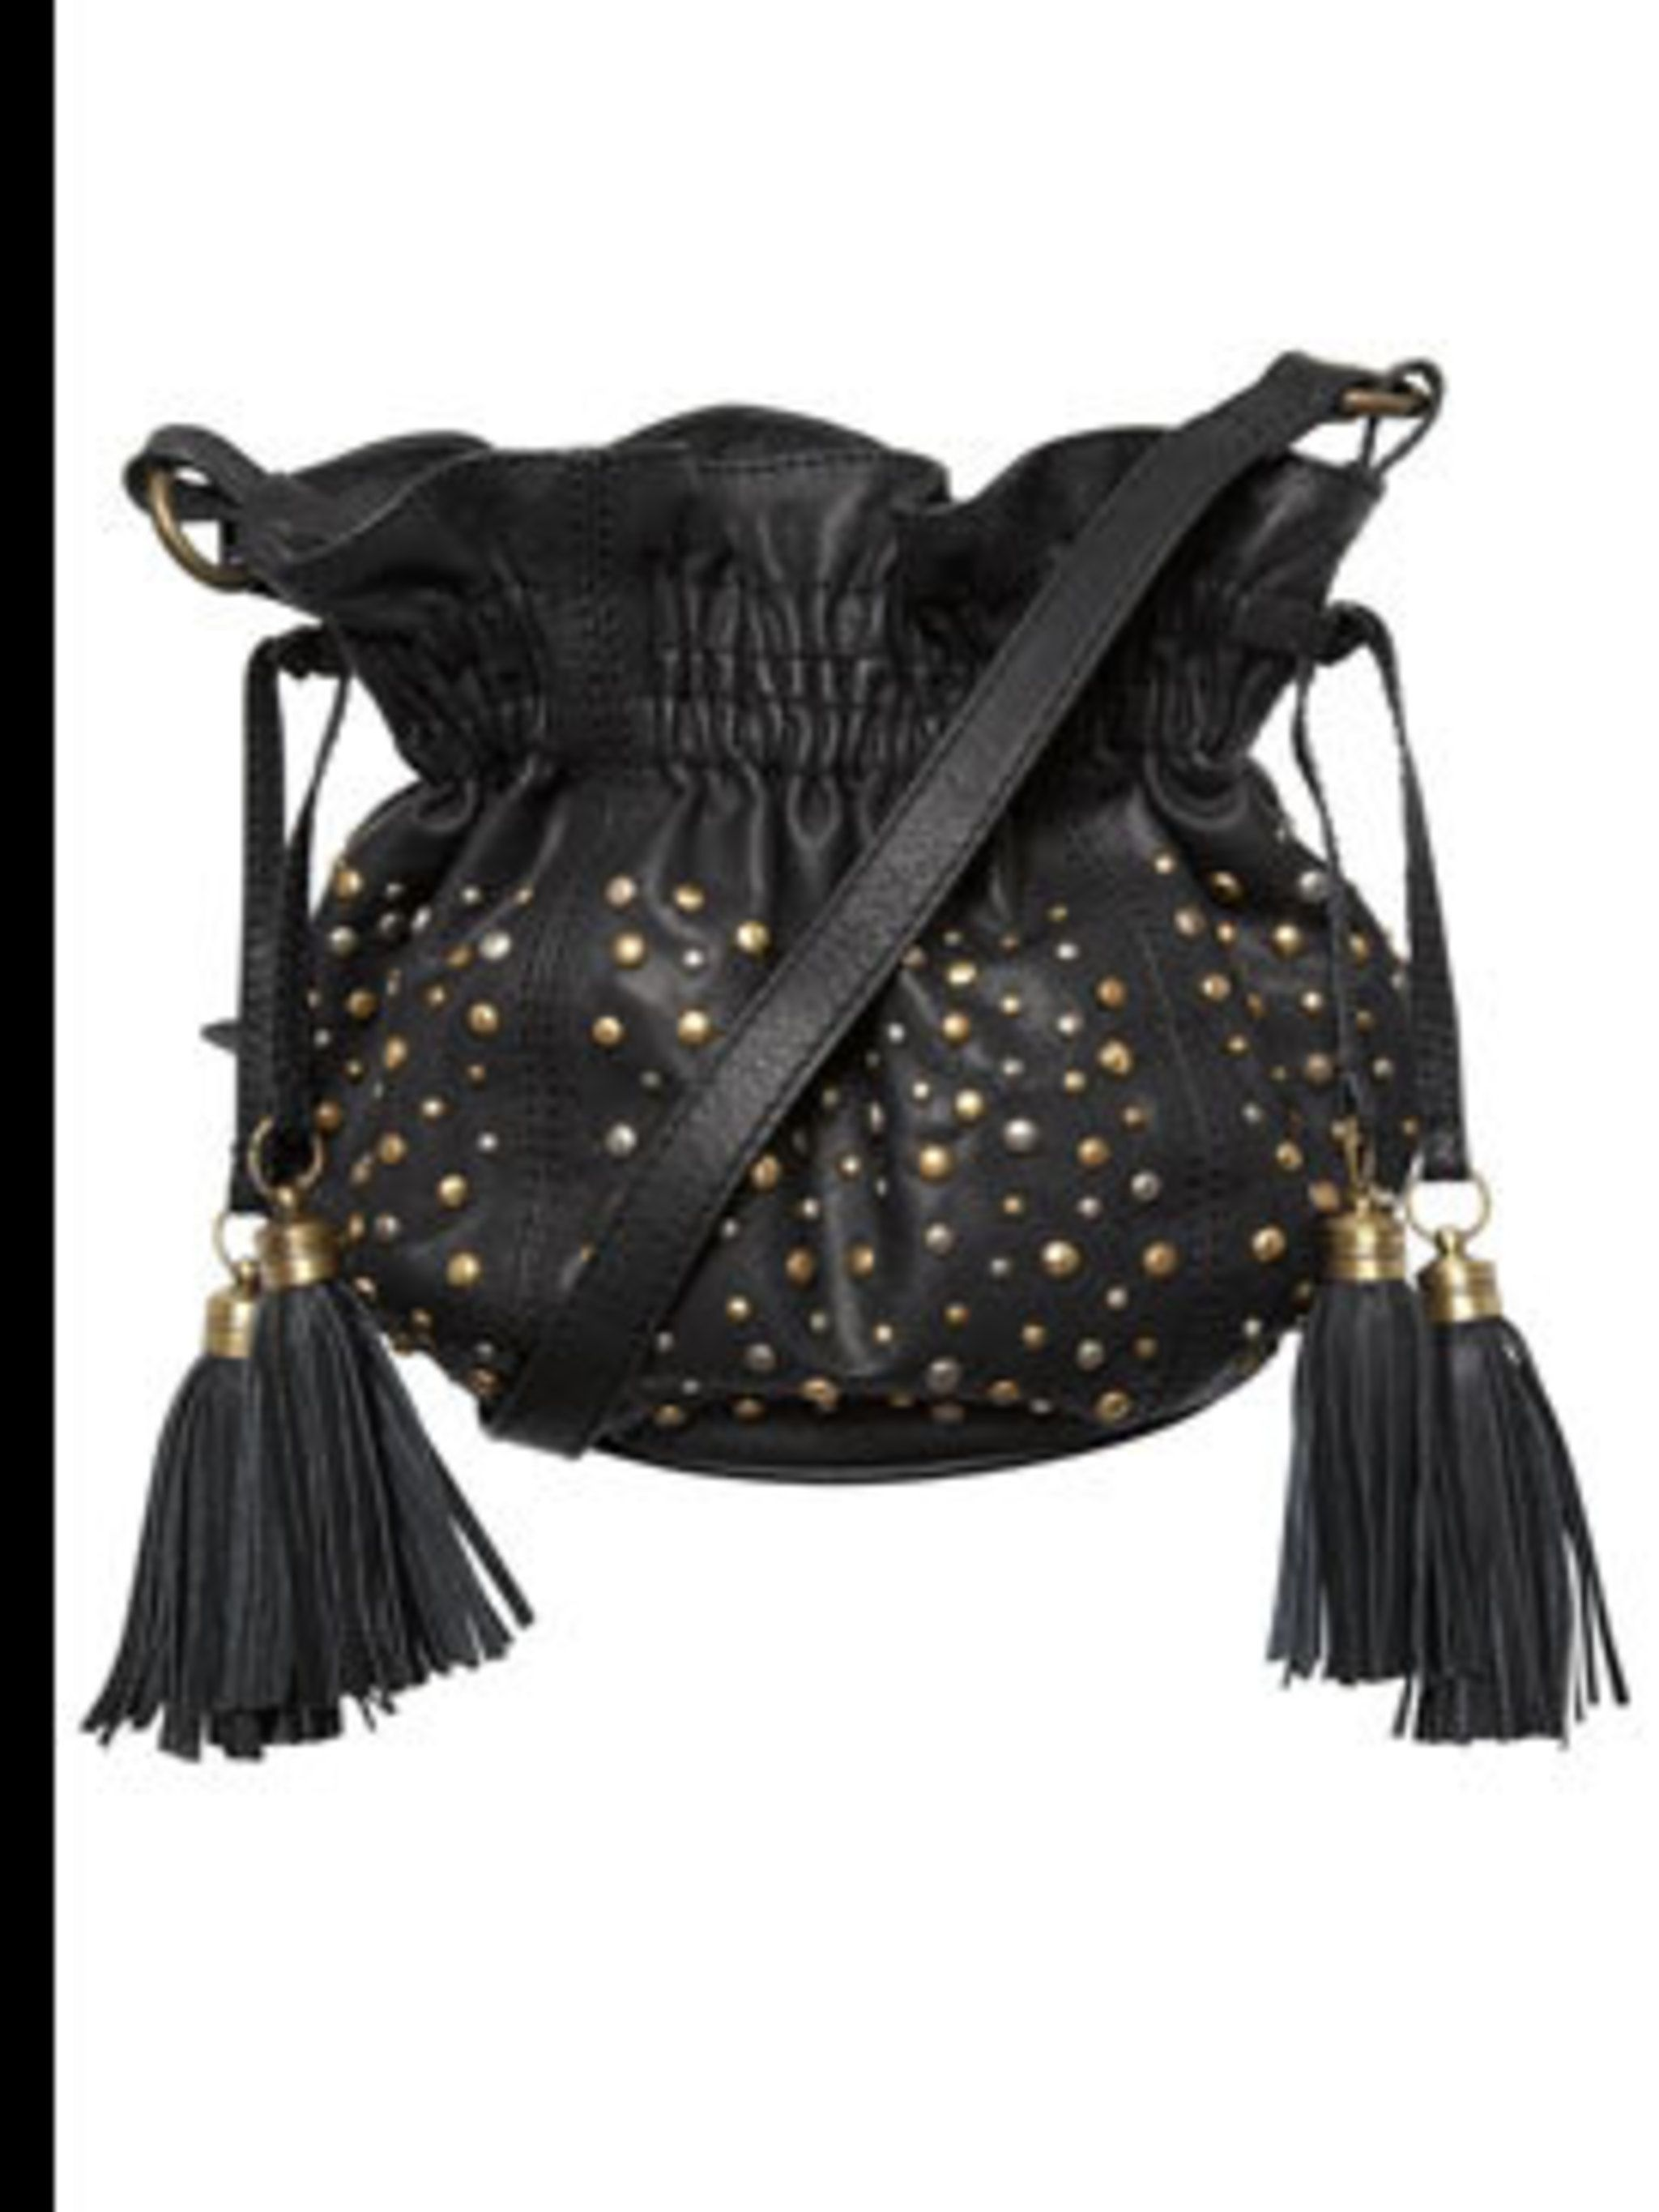 "<p>Black bucket bag, £40, by <a href=""http://www.oasis-stores.com/pws/Home.ice"">Oasis</a></p>"